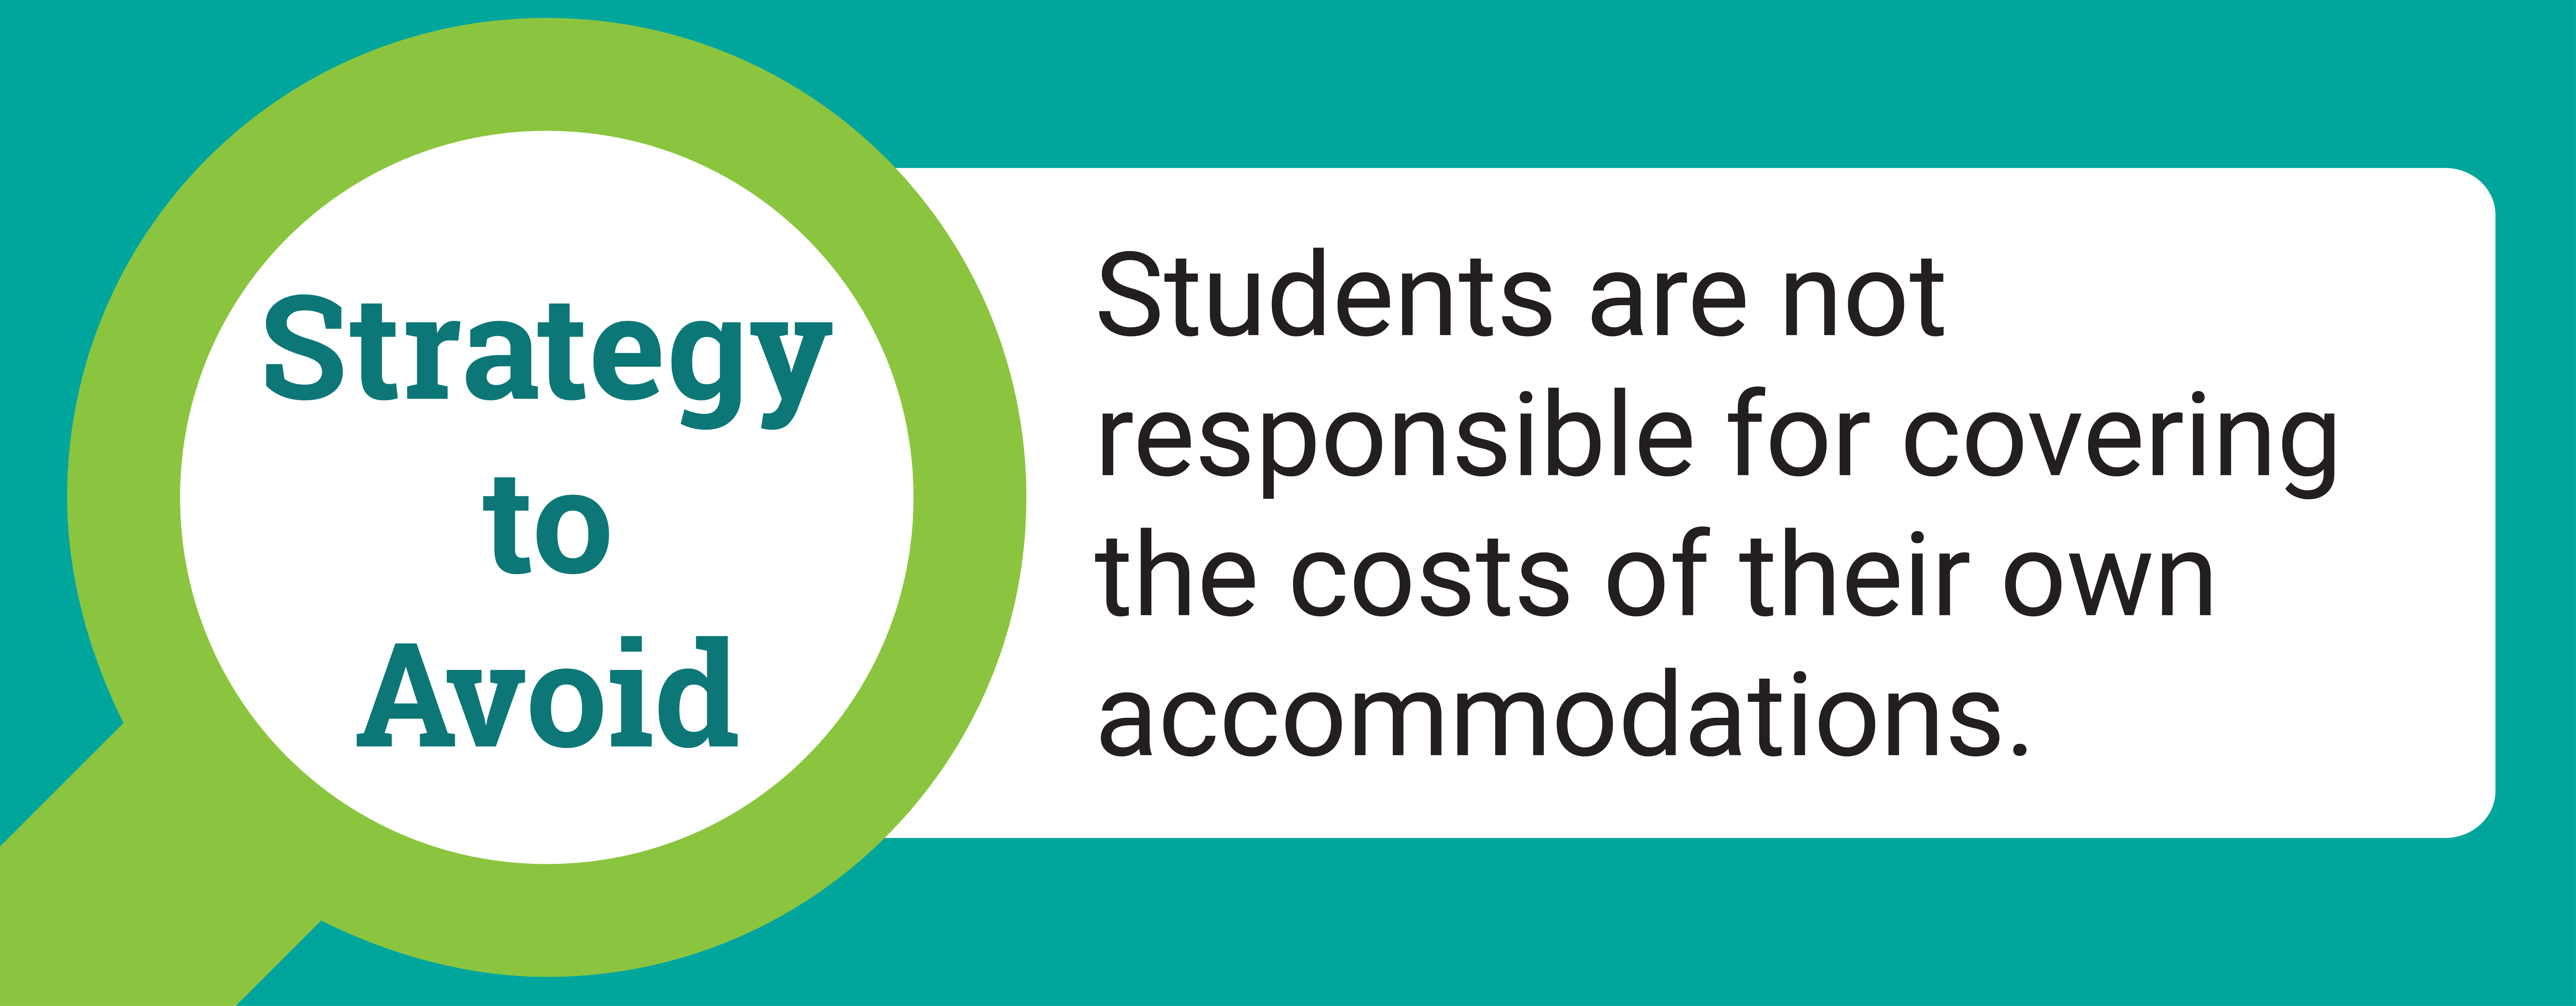 Text: Strategy to Avoid. Students are not responsible for covering the costs of their own accommodations, with teal border and lime green magnifying glass.